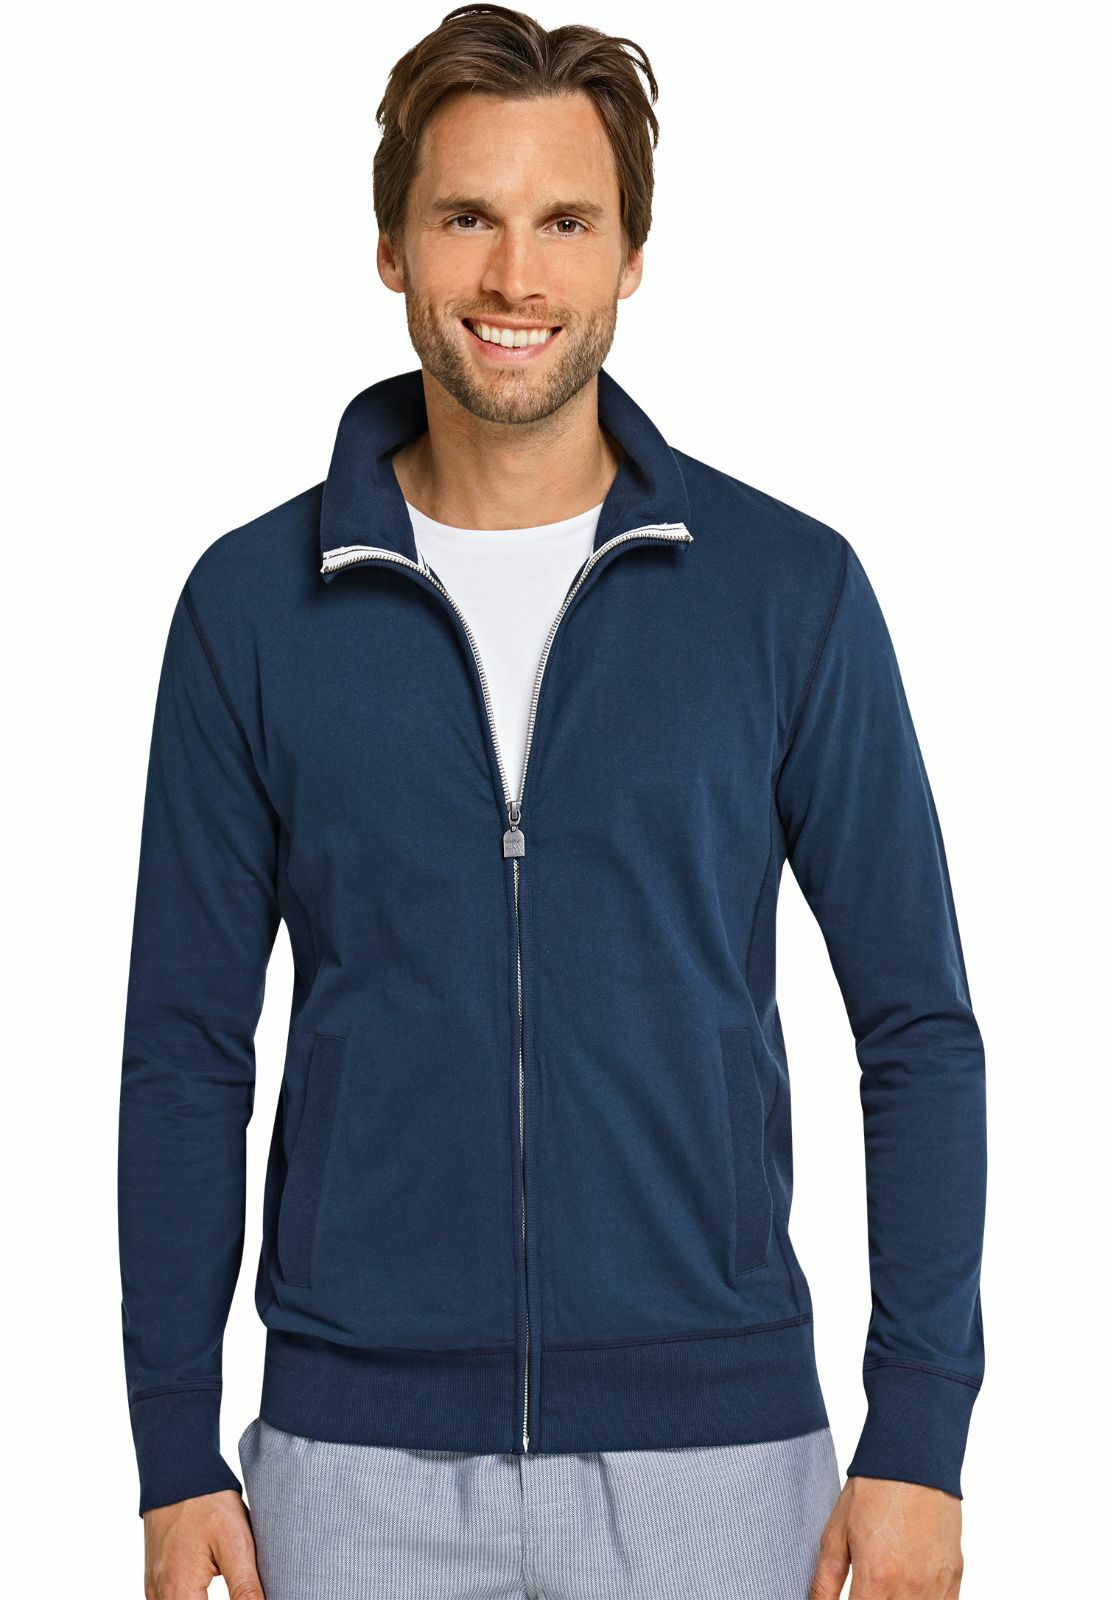 Mens Hooded Jacket Schiesser Discount Wiki Co7hdUnCYp